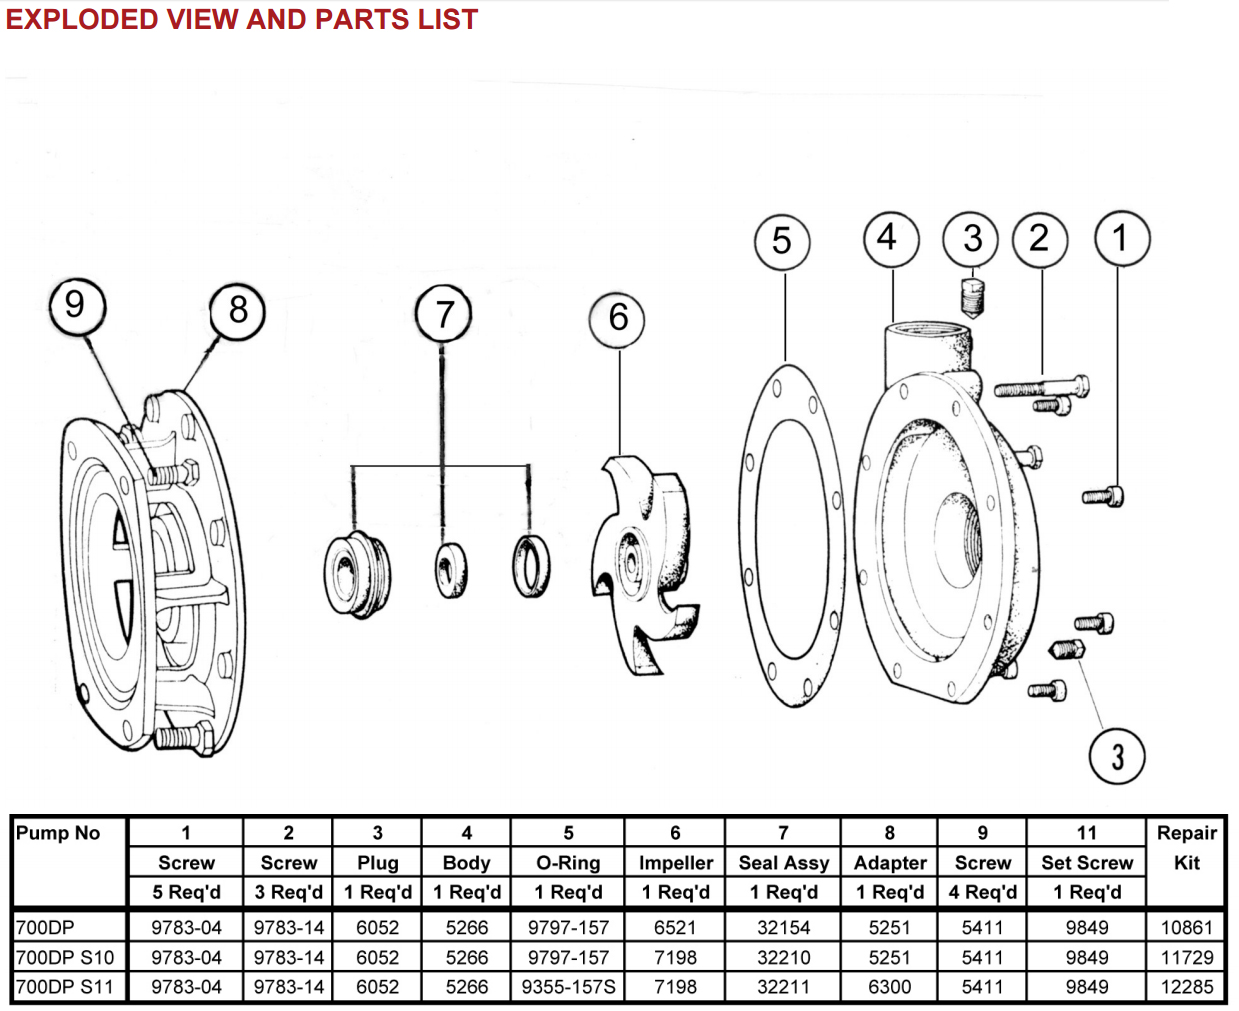 Oberdorfer 700DP Exploded View and Parts List